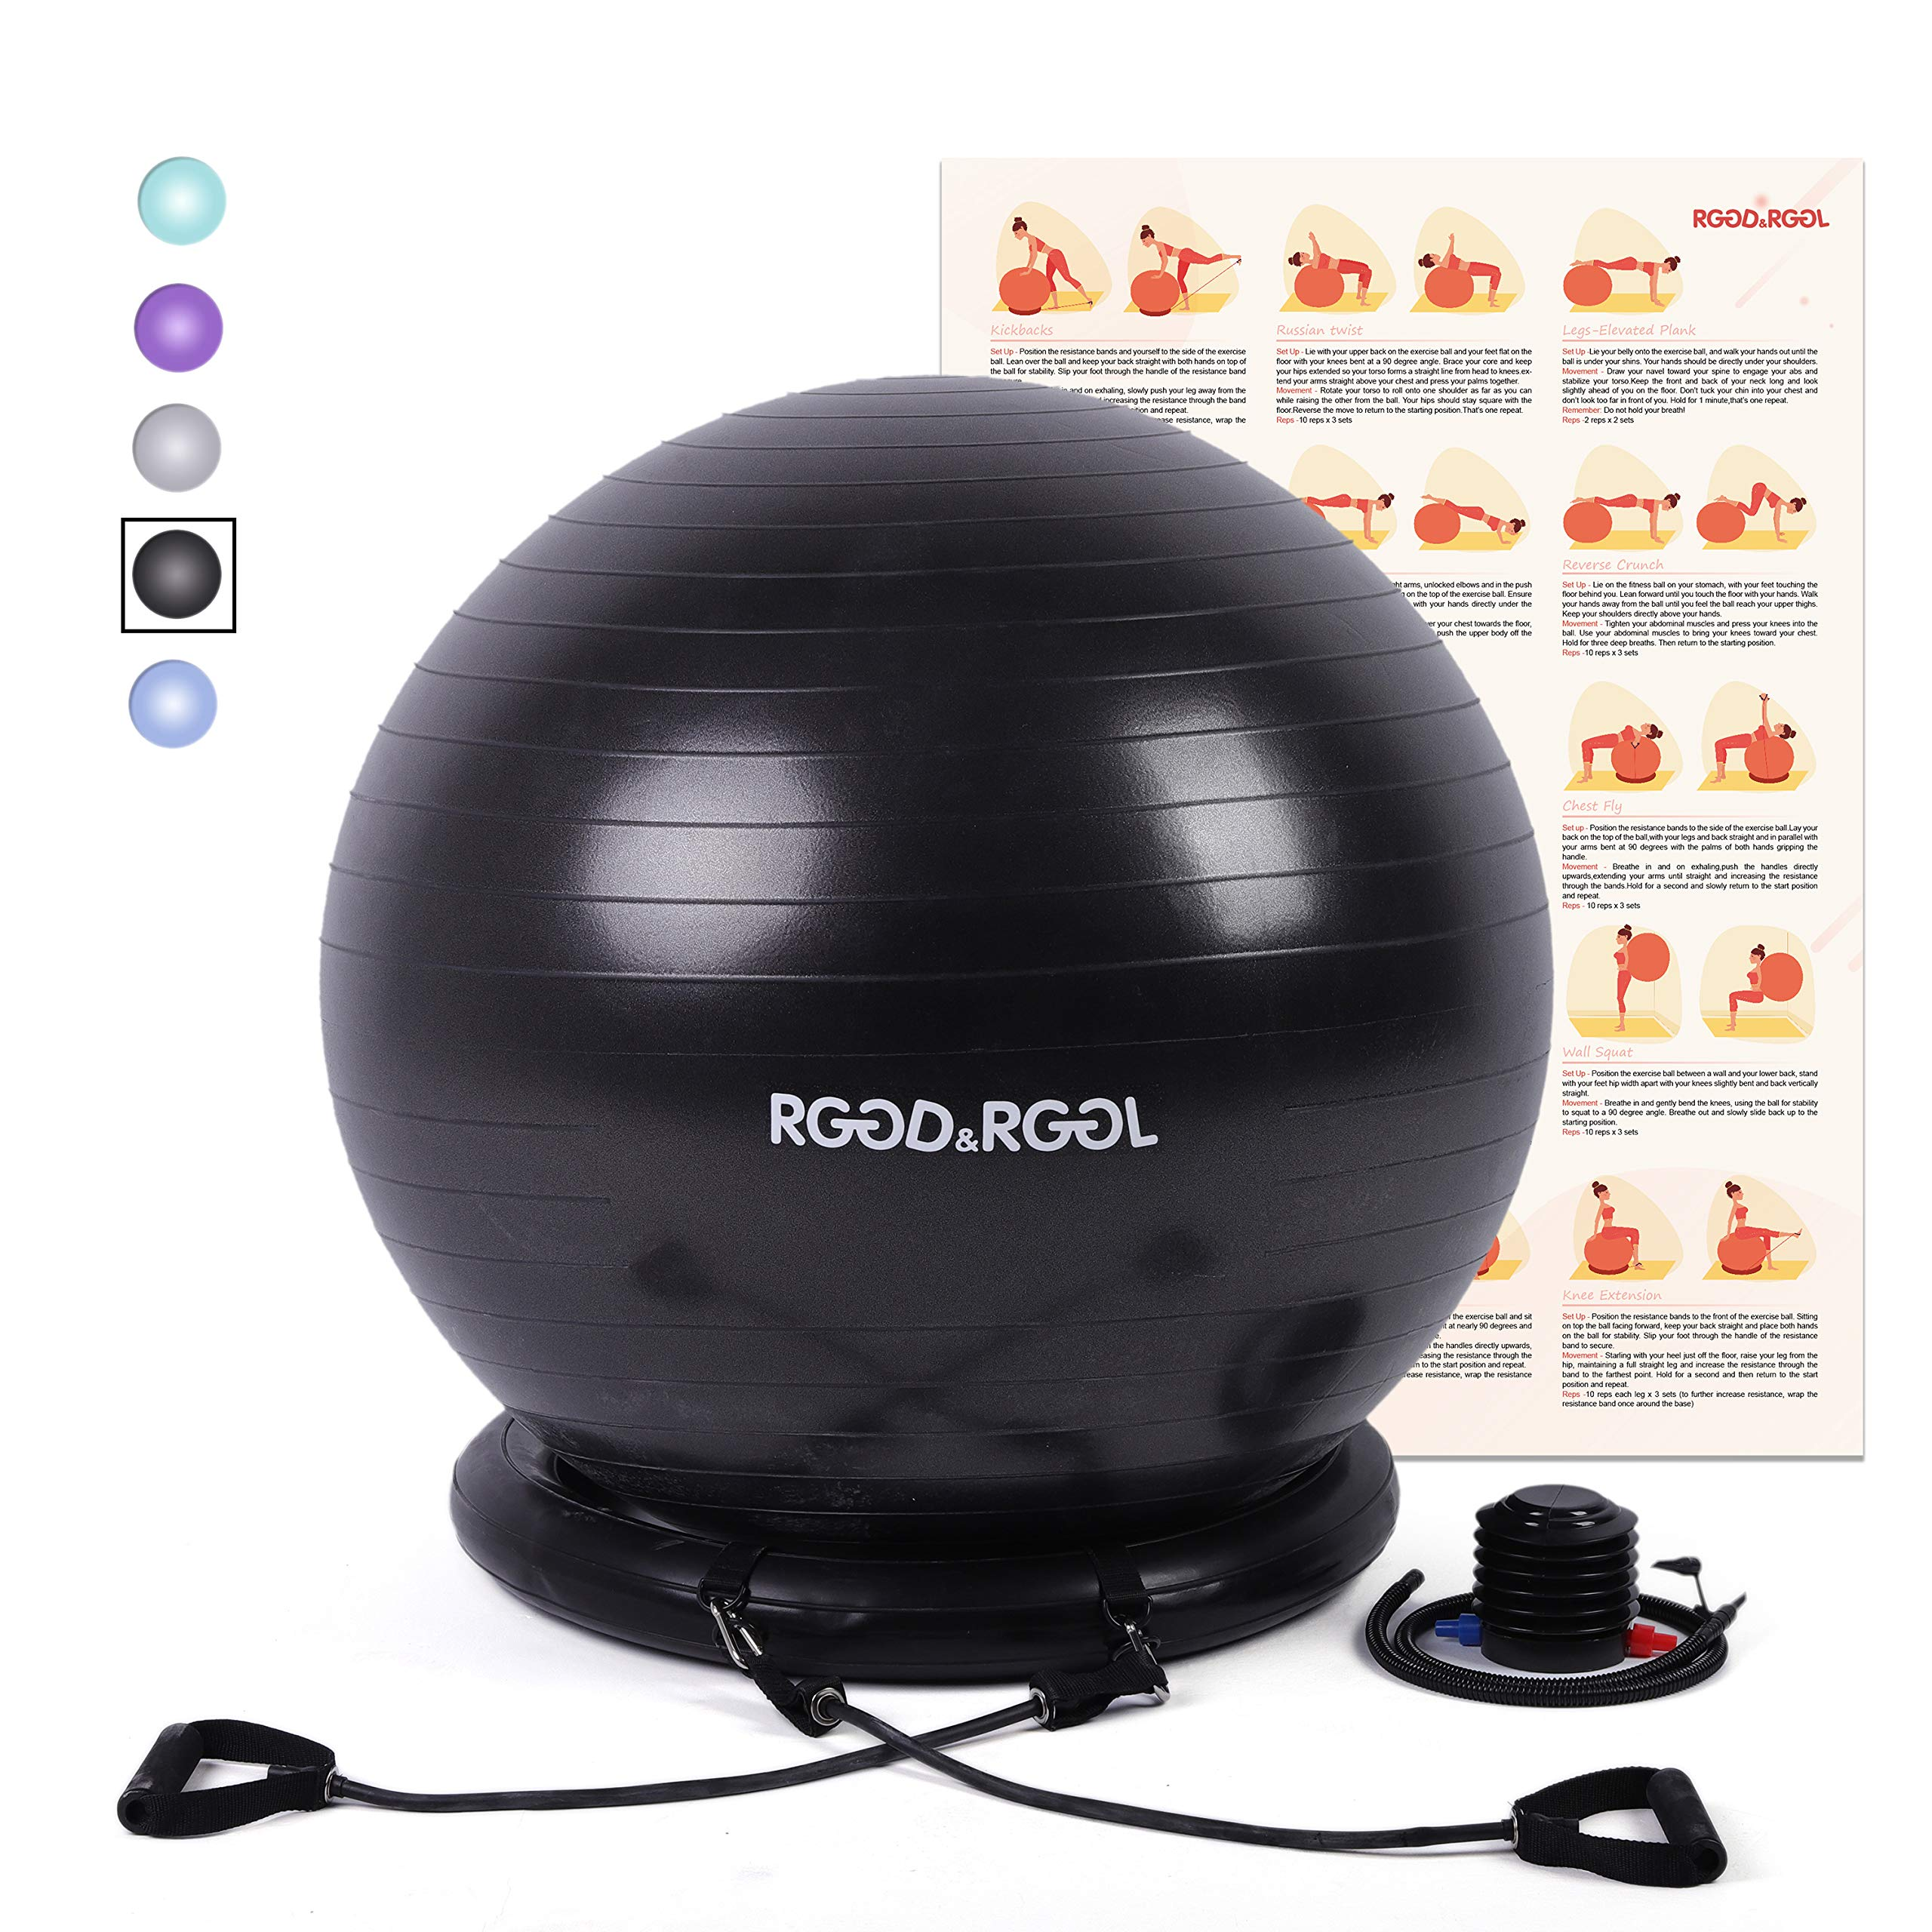 RGGD&RGGL Yoga Ball Chair, Exercise Balance Ball Chair 65cm with Inflatable Stability Ring, 2 Resistant Bands and Pump for Core Strength and Endurance by RGGD&RGGL (Image #2)